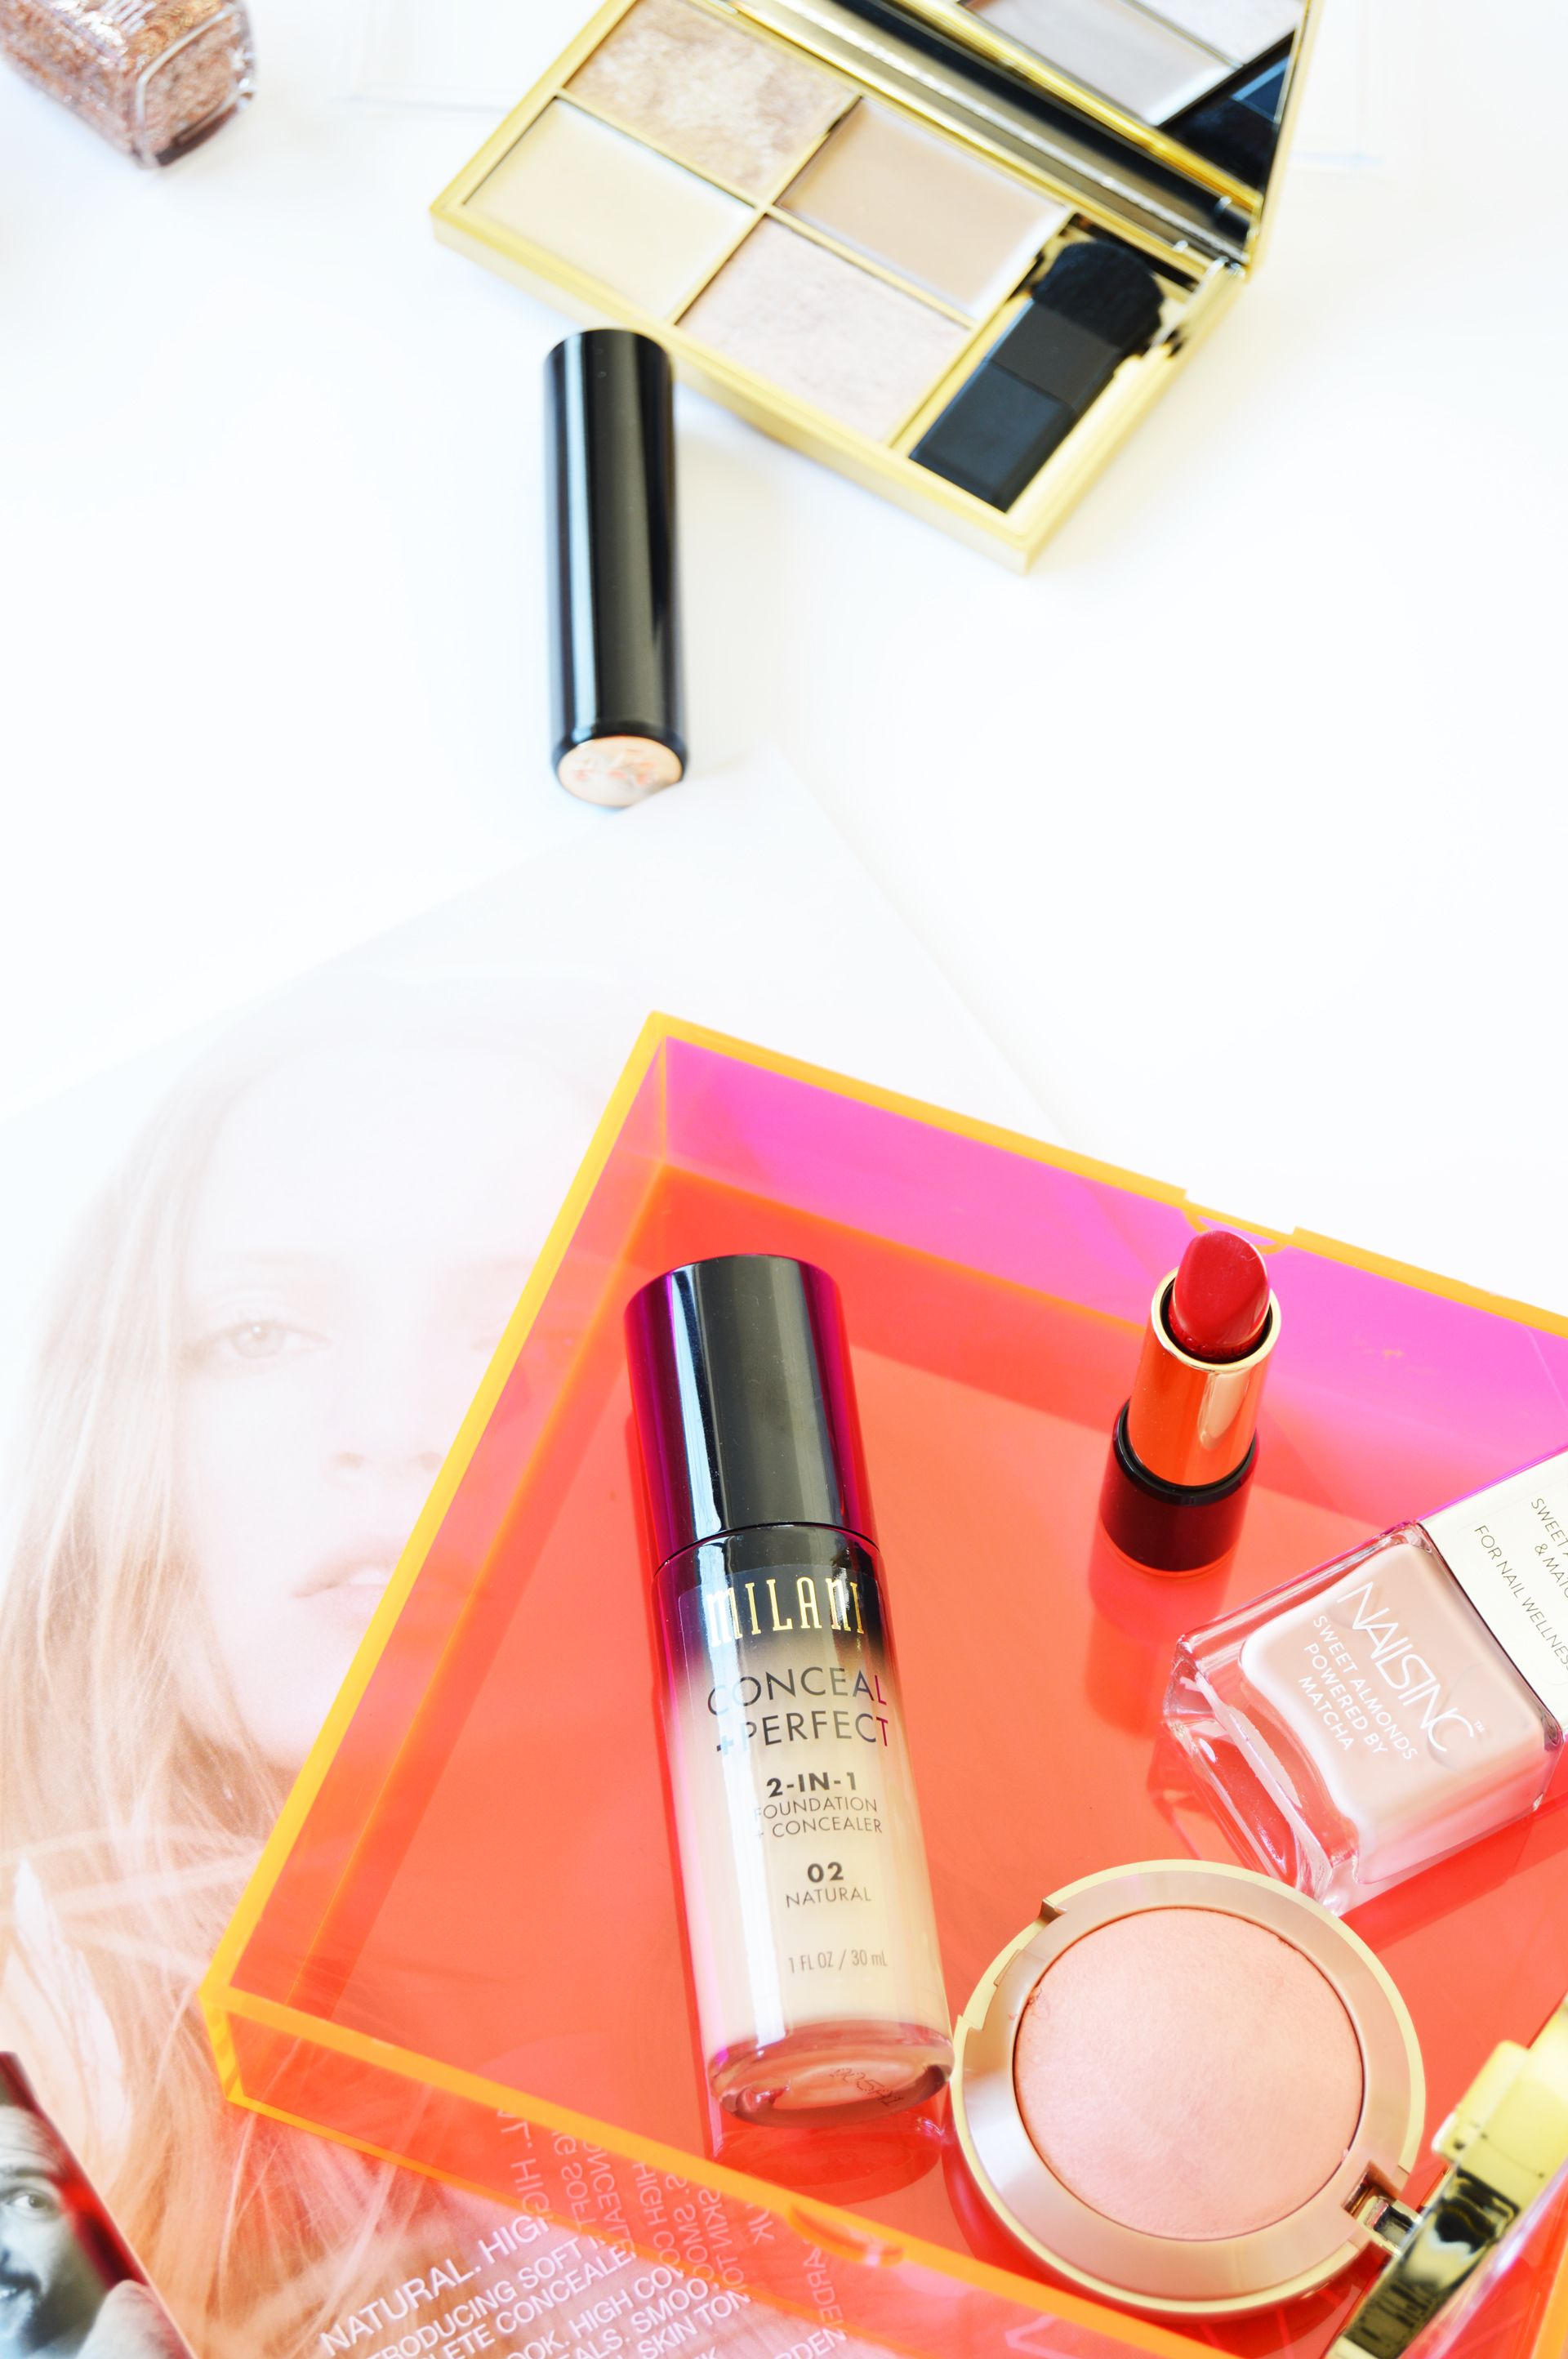 Makeup trends change a lot and one of the main influencers is the fashion week. To find out more about the fashion week inspired makeup trends for spring 2017 check out the post.